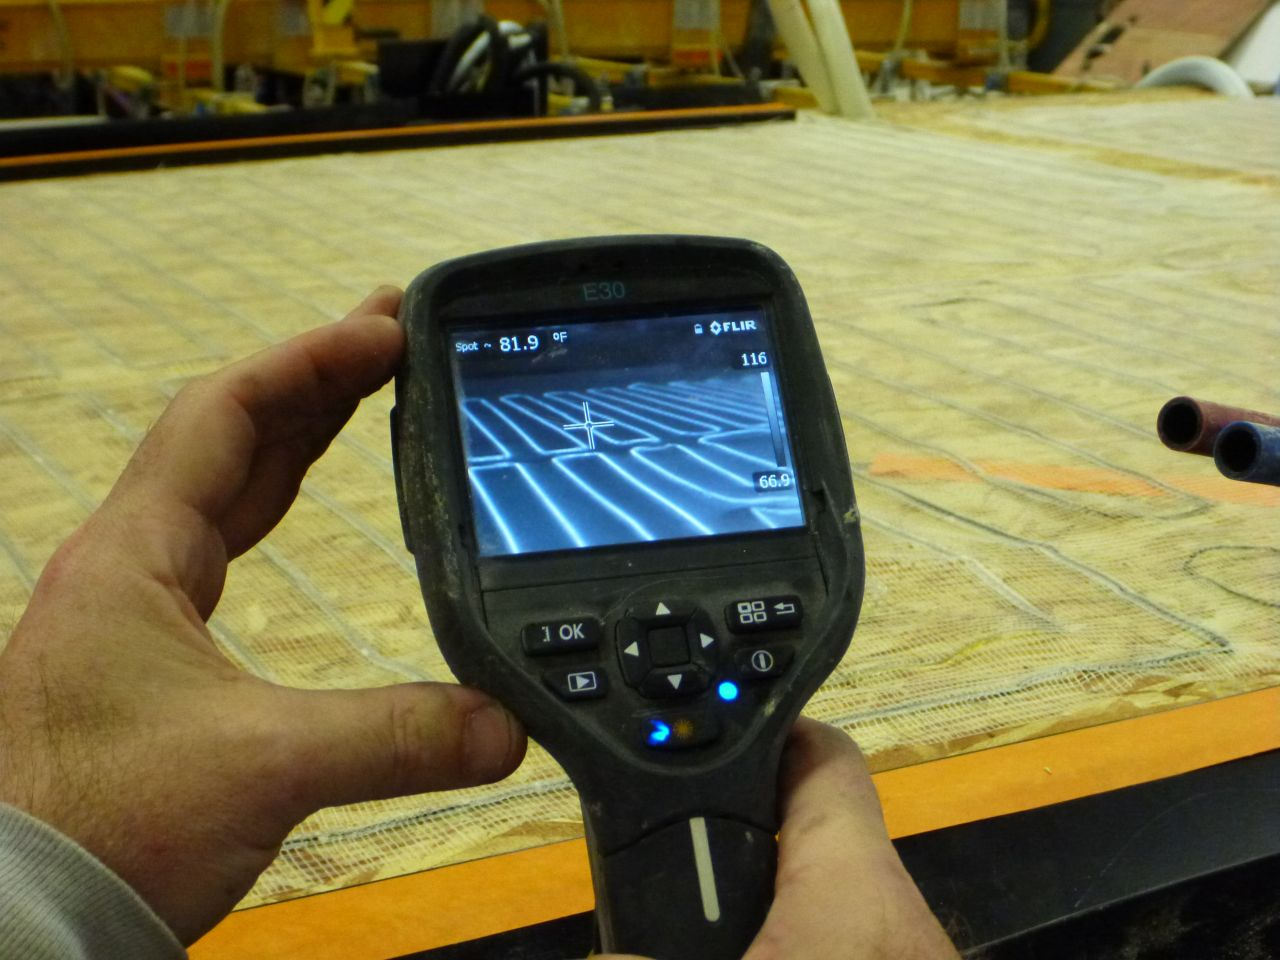 A Flir Thermal Imaging Detector